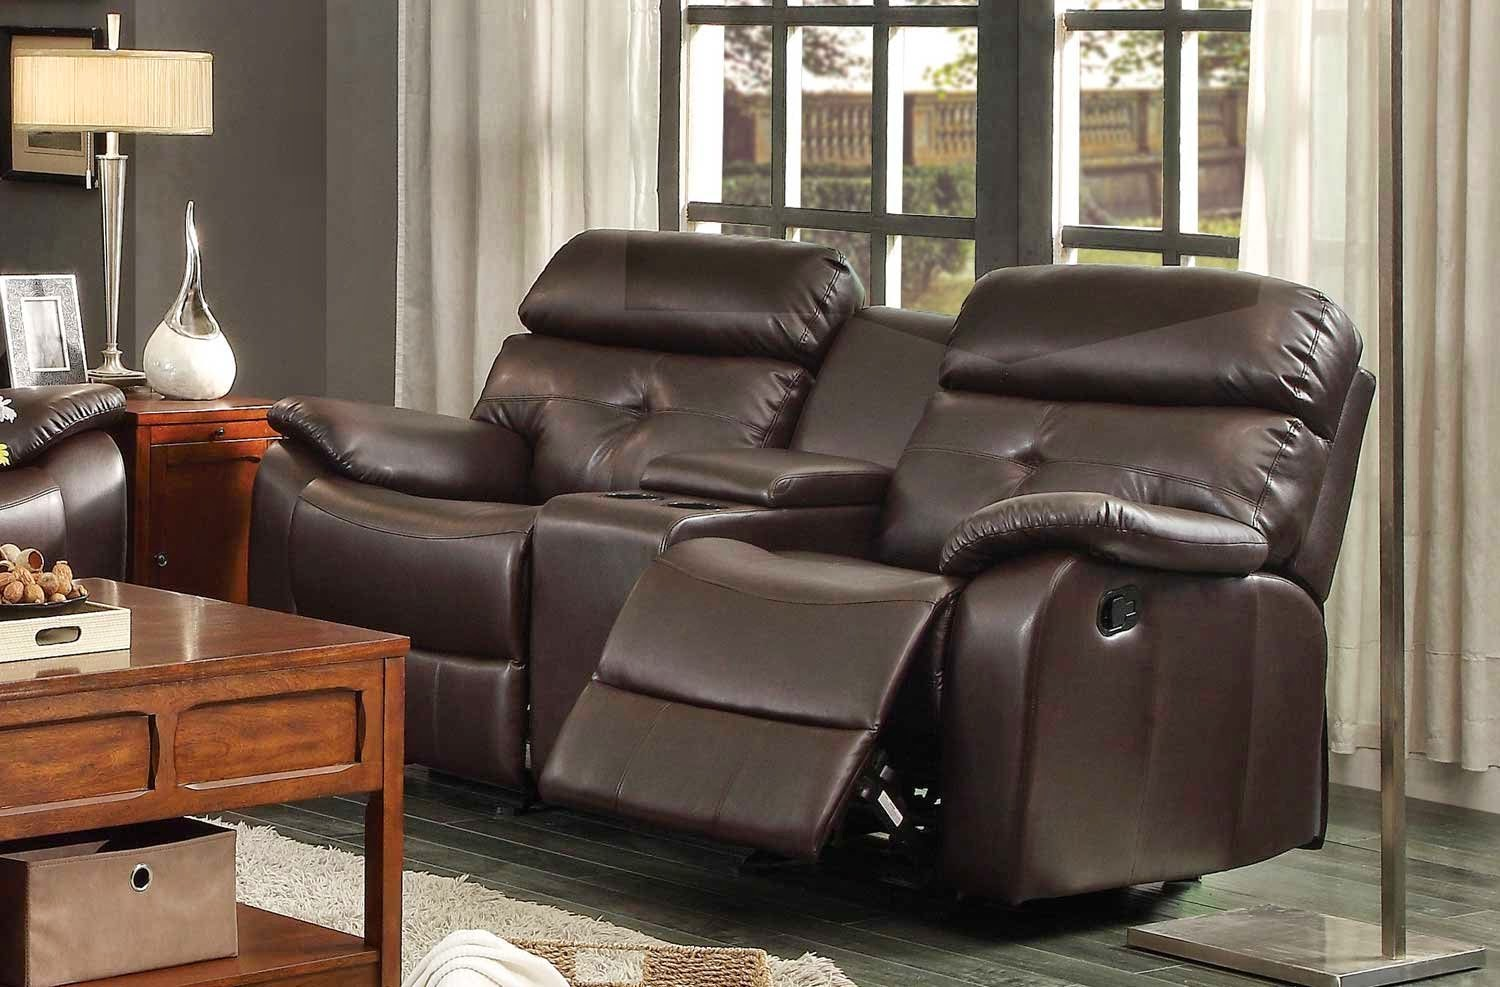 Homelegance Dark Brown 2 Seat Reclining Leather Sofa & Best Leather Reclining Sofa Brands Reviews: 2 Seat Reclining ... islam-shia.org